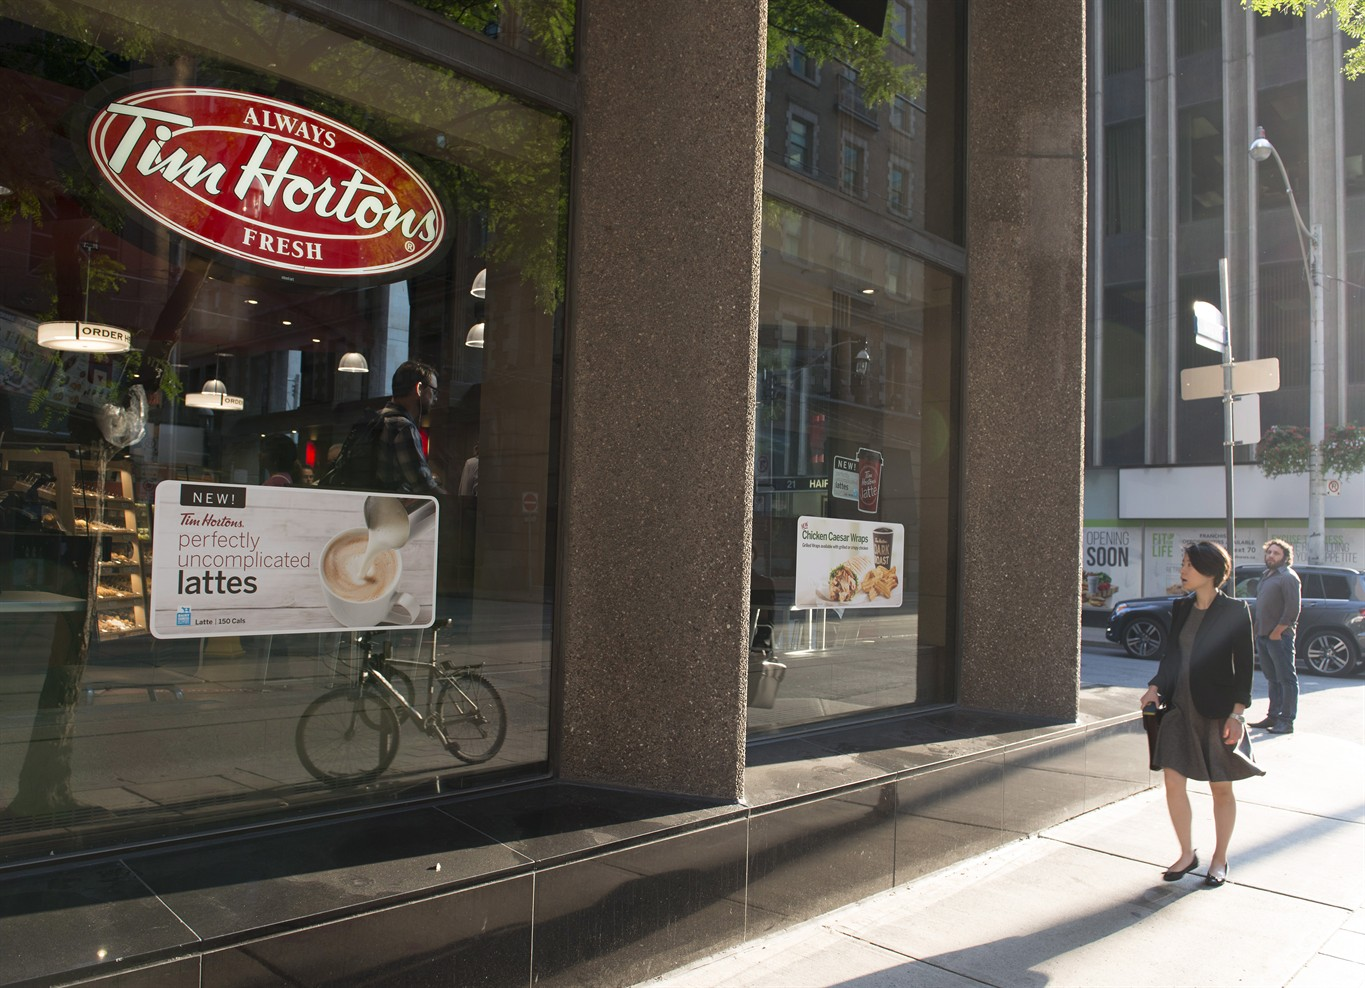 Restaurant Brands signs deal to take Tim Hortons to Spain